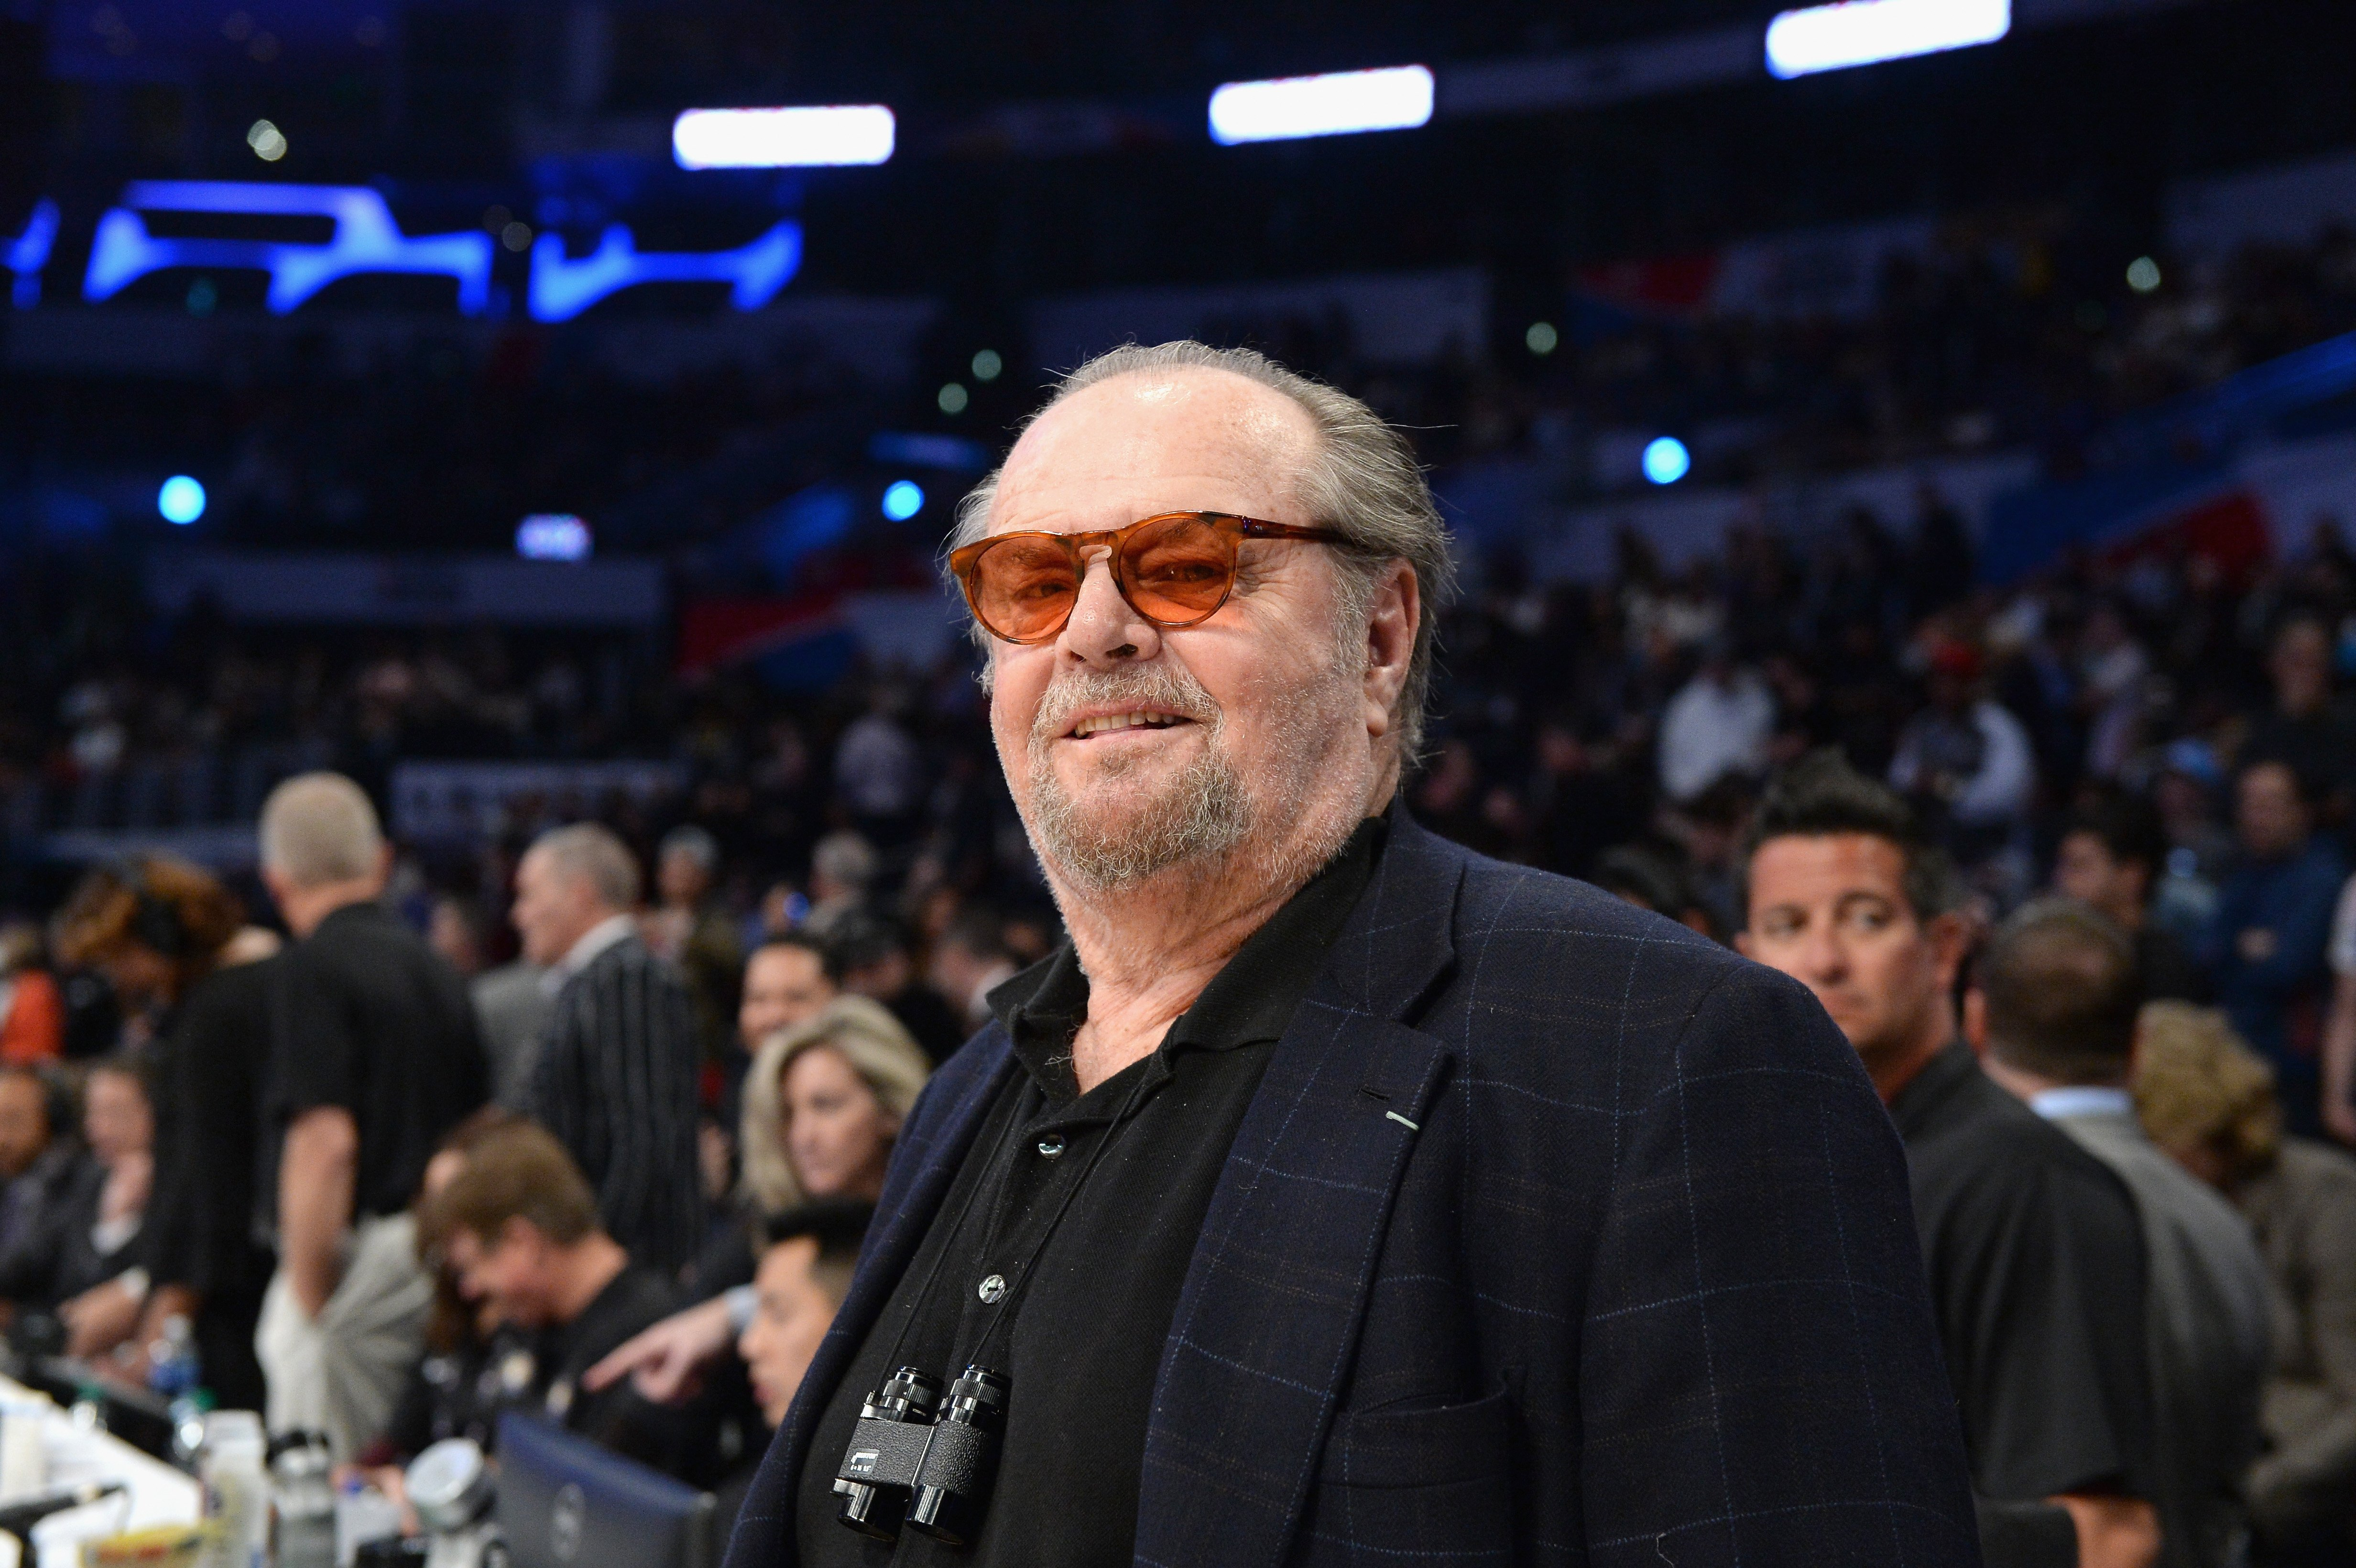 Jack Nicholson attends the NBA All-Star Game 2018 at Staples Center on February 18, 2018, in Los Angeles, California. | Source: Getty Images.